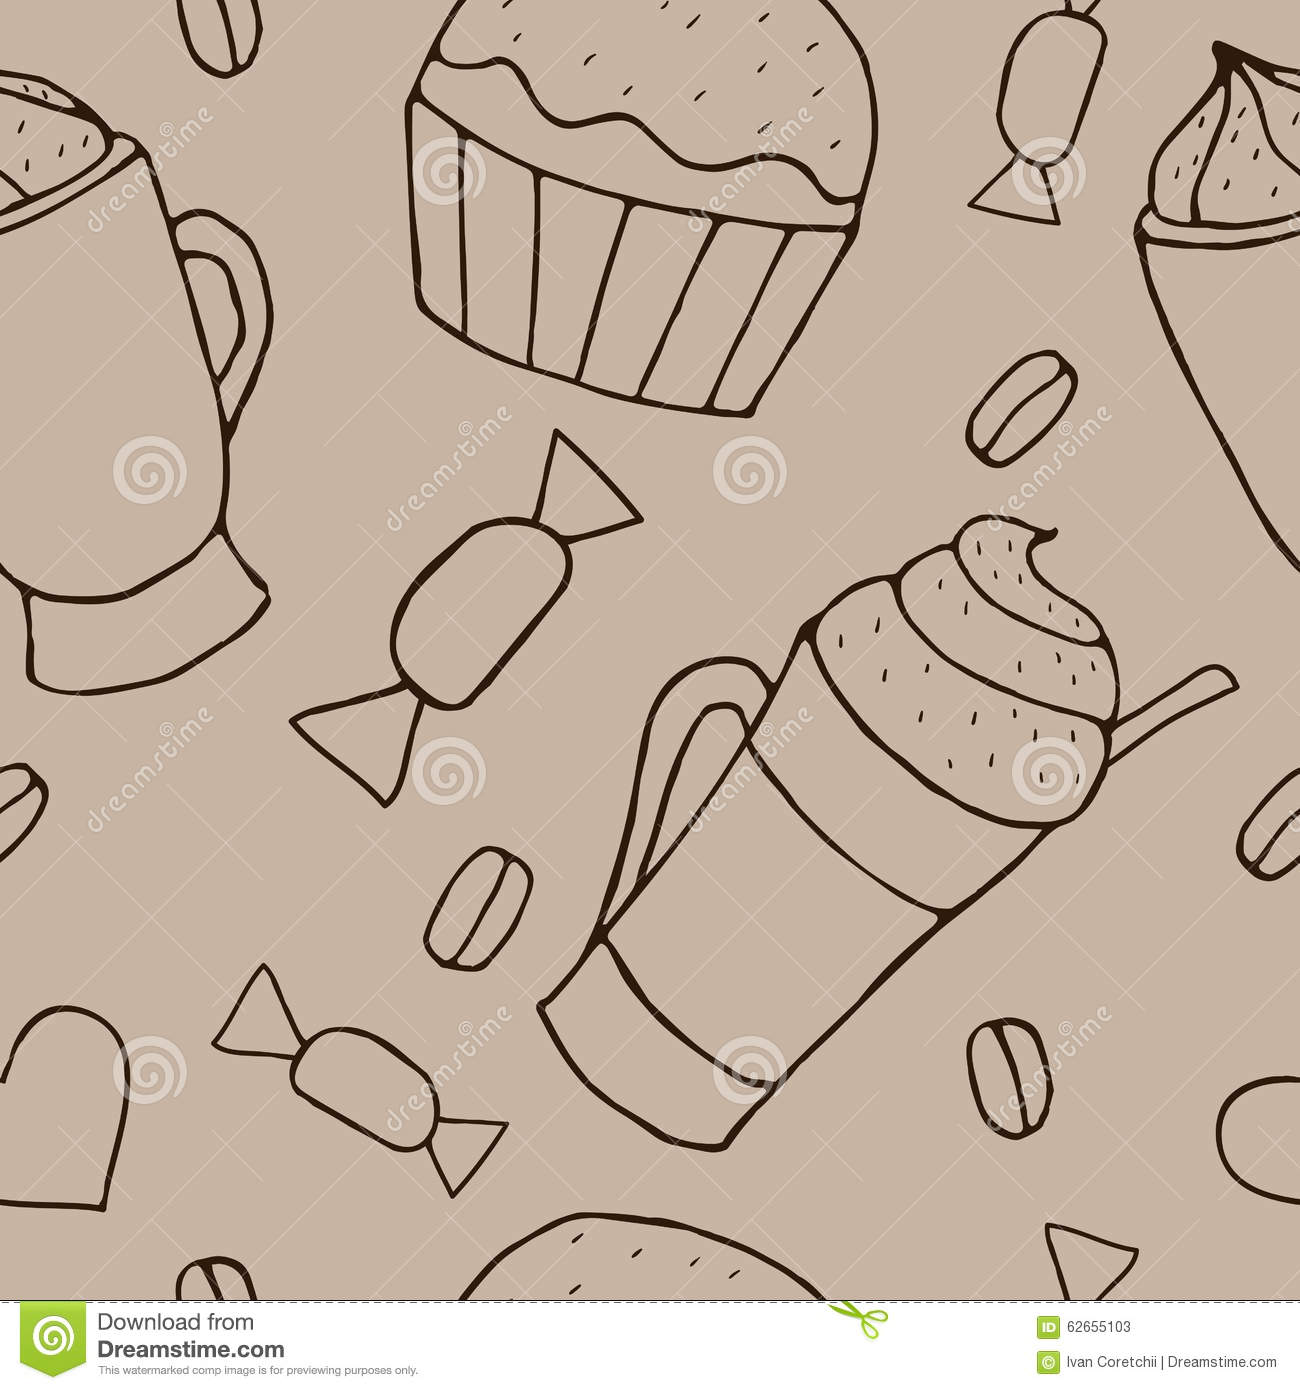 seamless doodle coffee pattern - photo #22